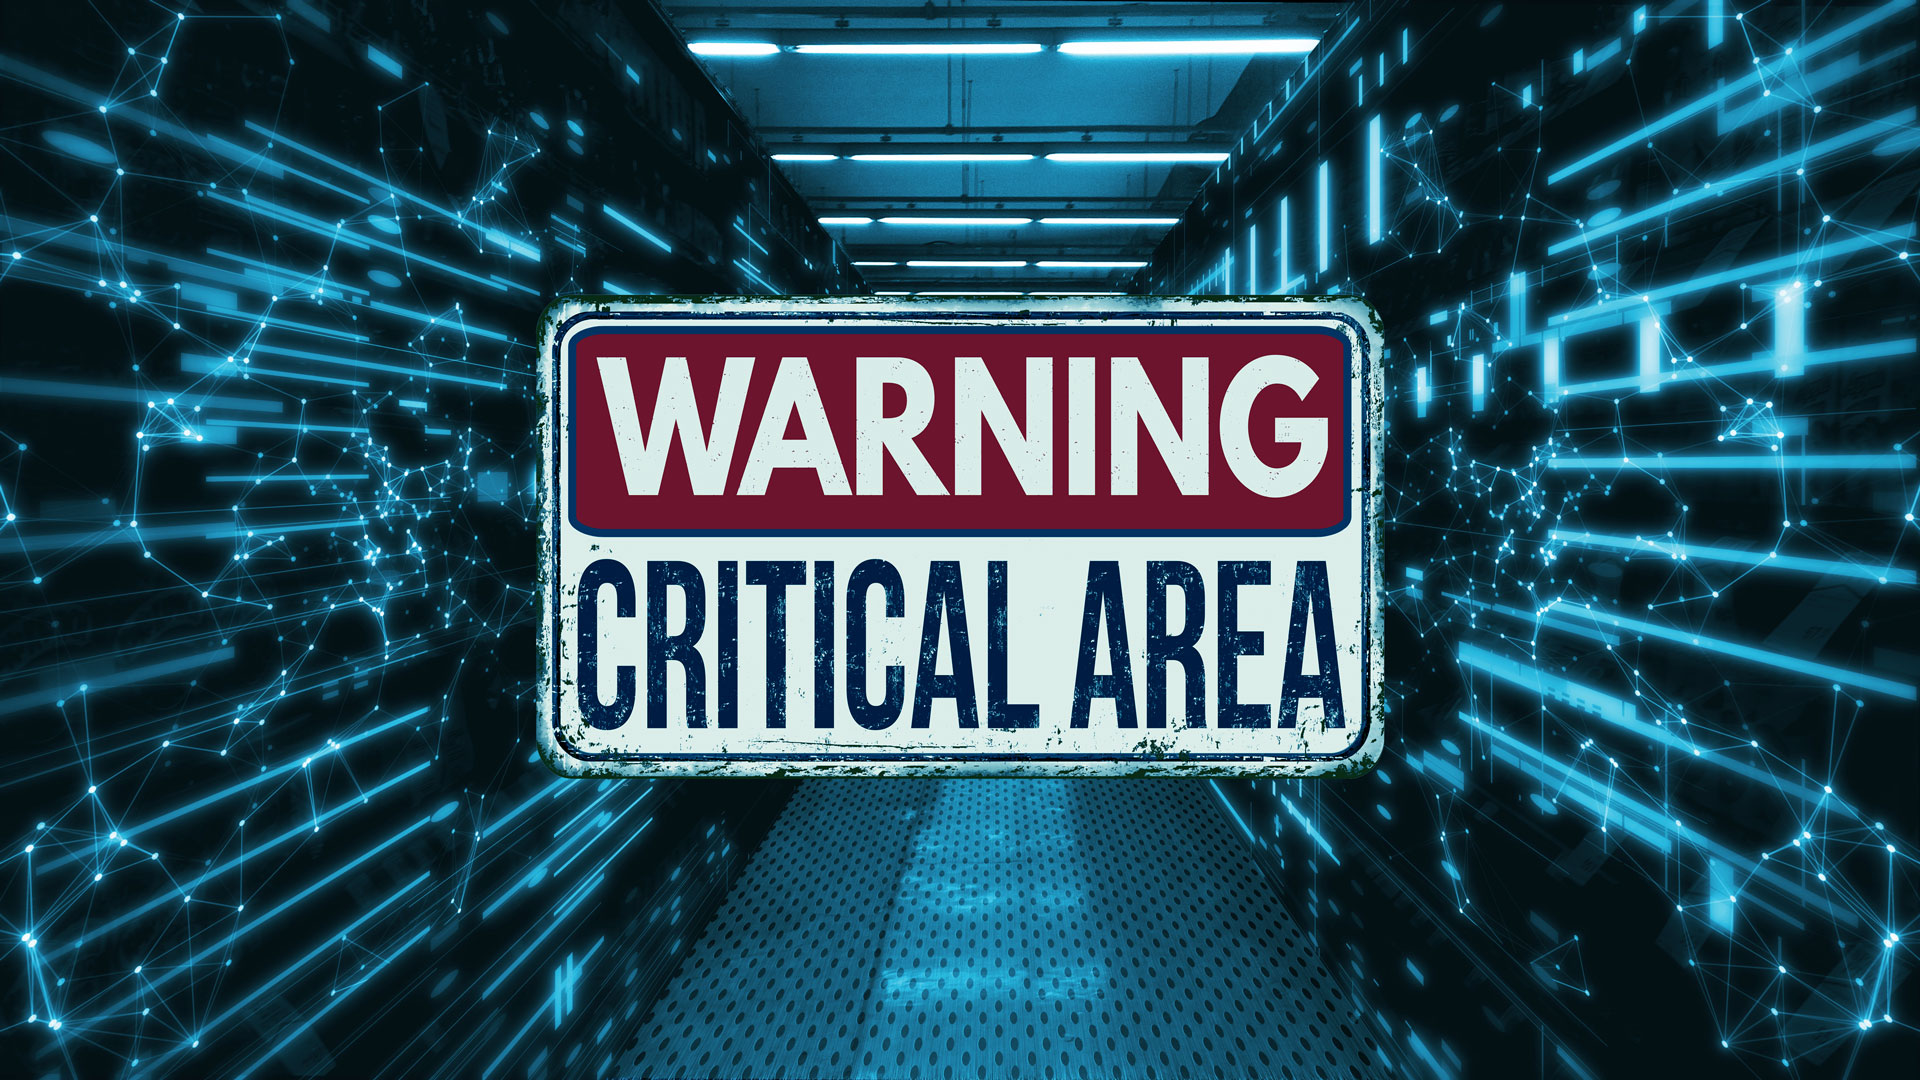 Are data centers critical infrastructure? Y-E-S!